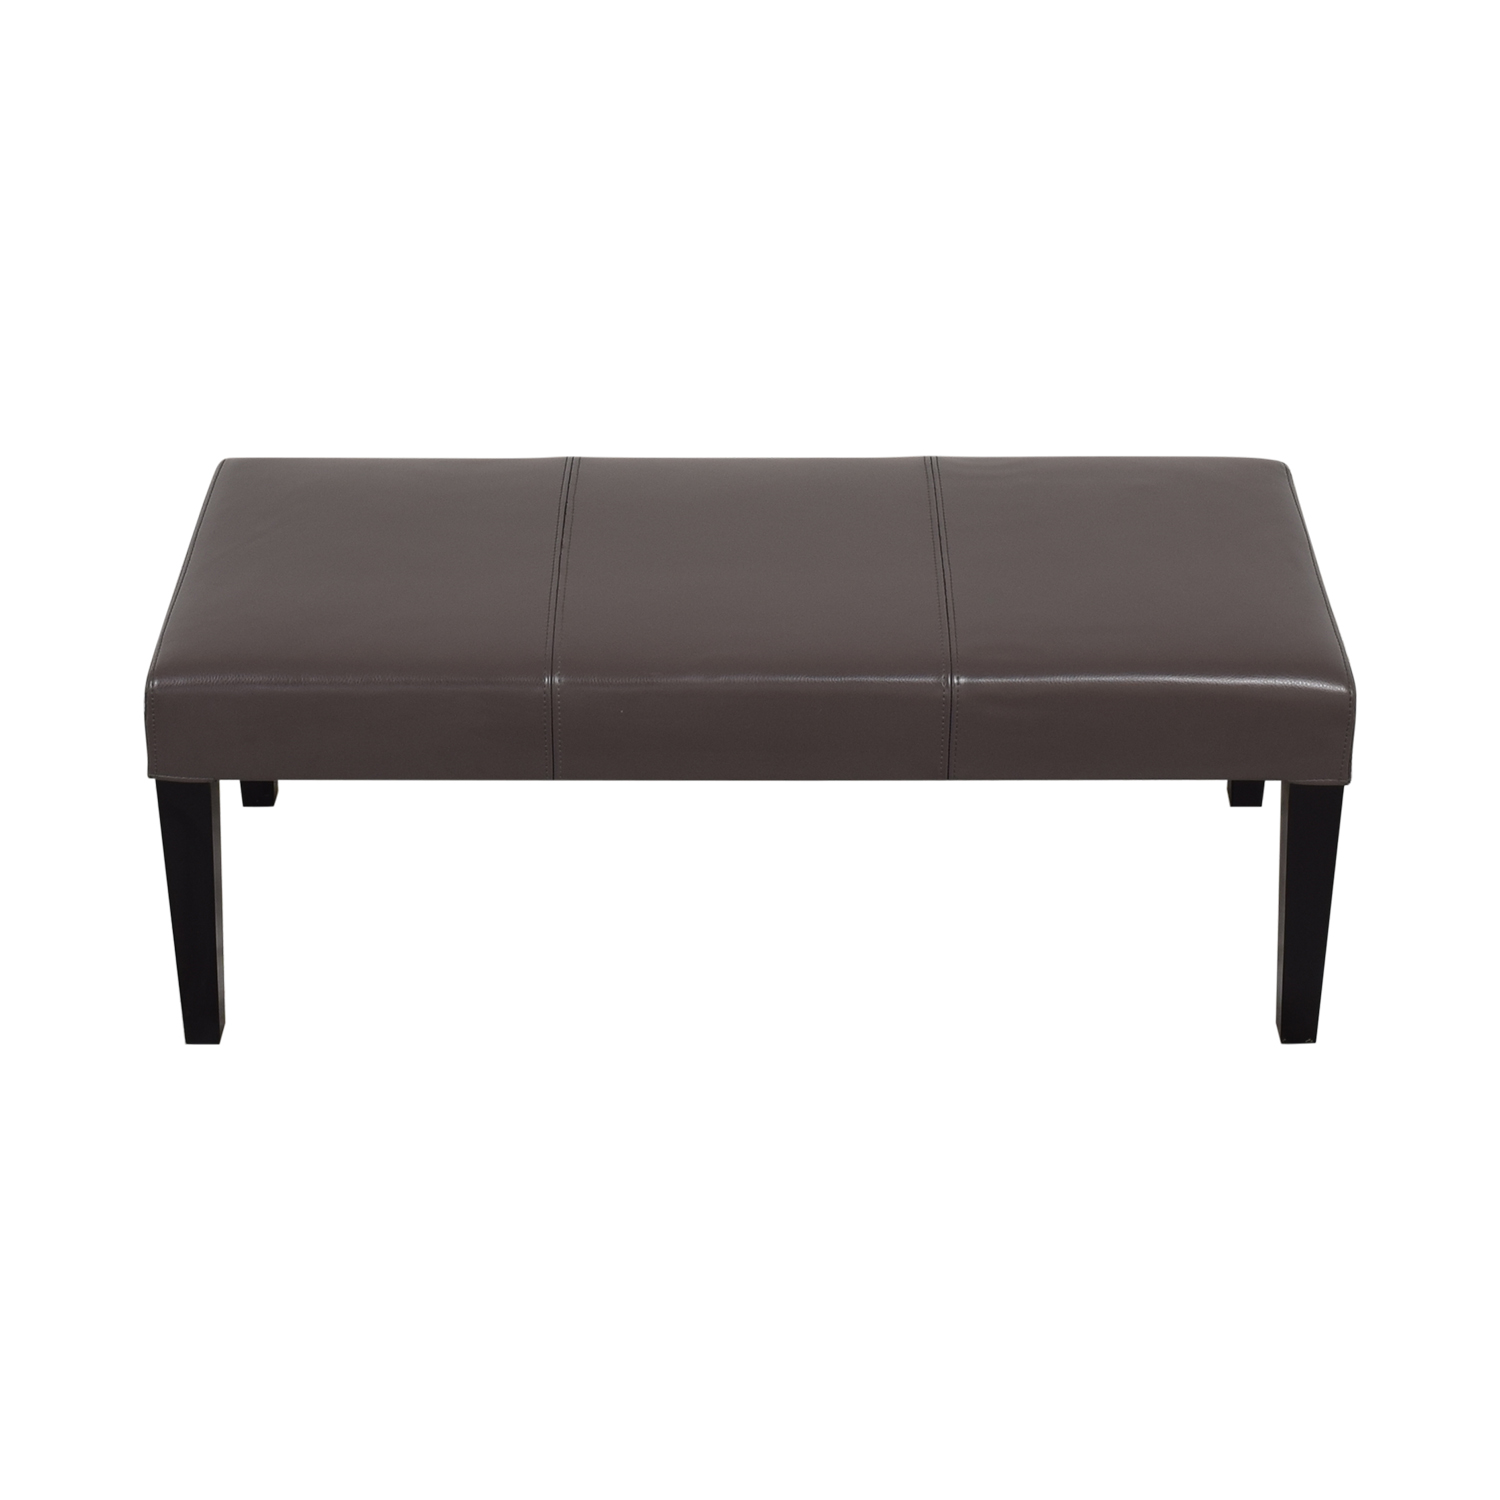 Crate & Barrel Crate & Barrel Lowe Backless Bench nj